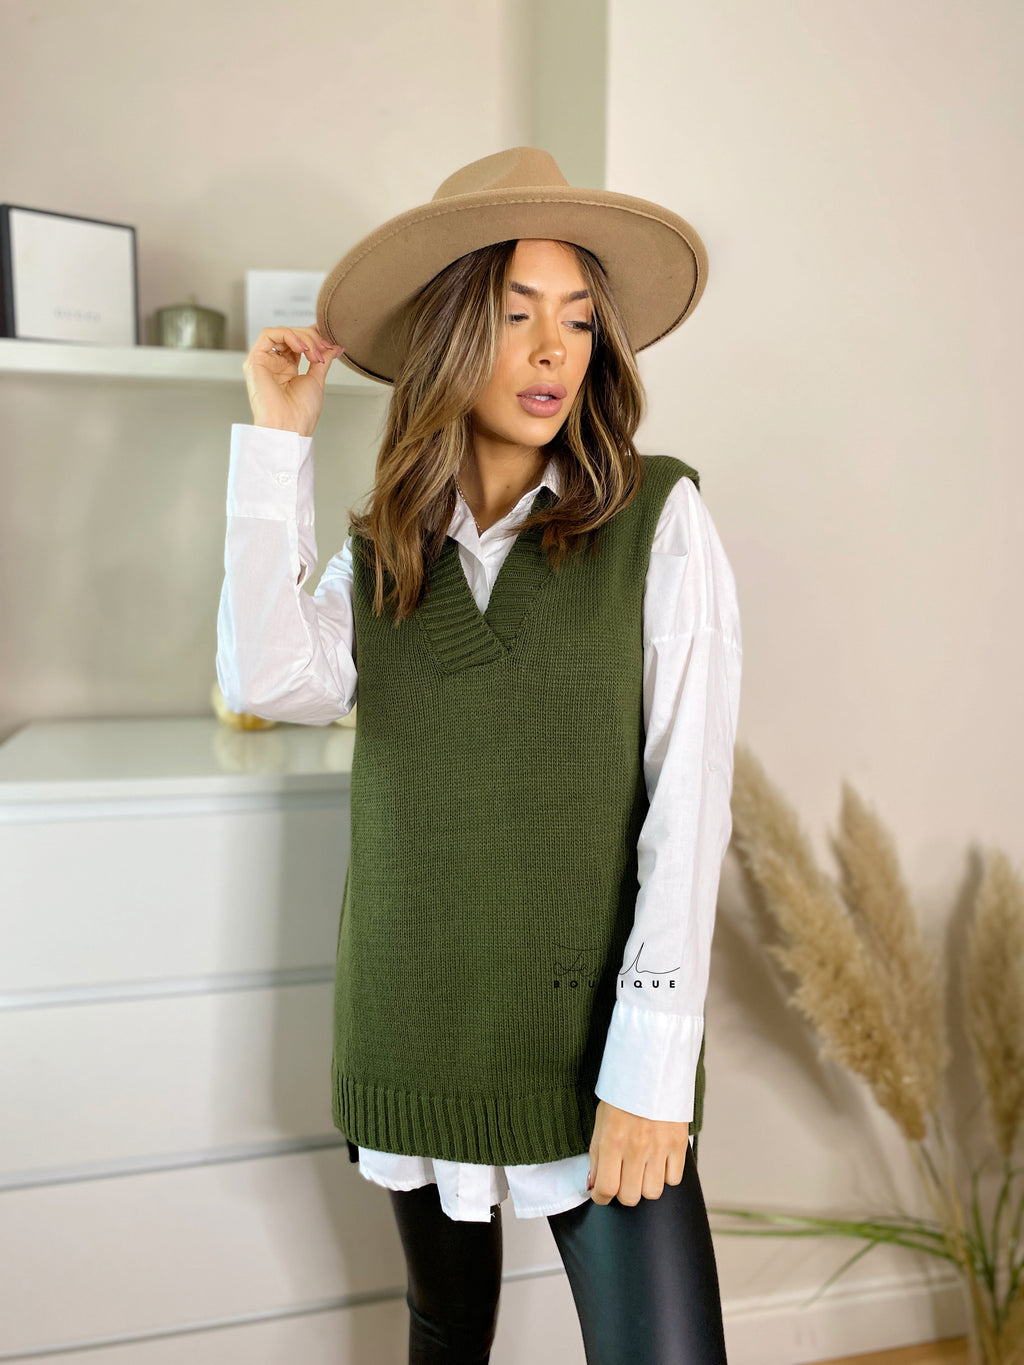 Women's sleeveless khaki knitted vest